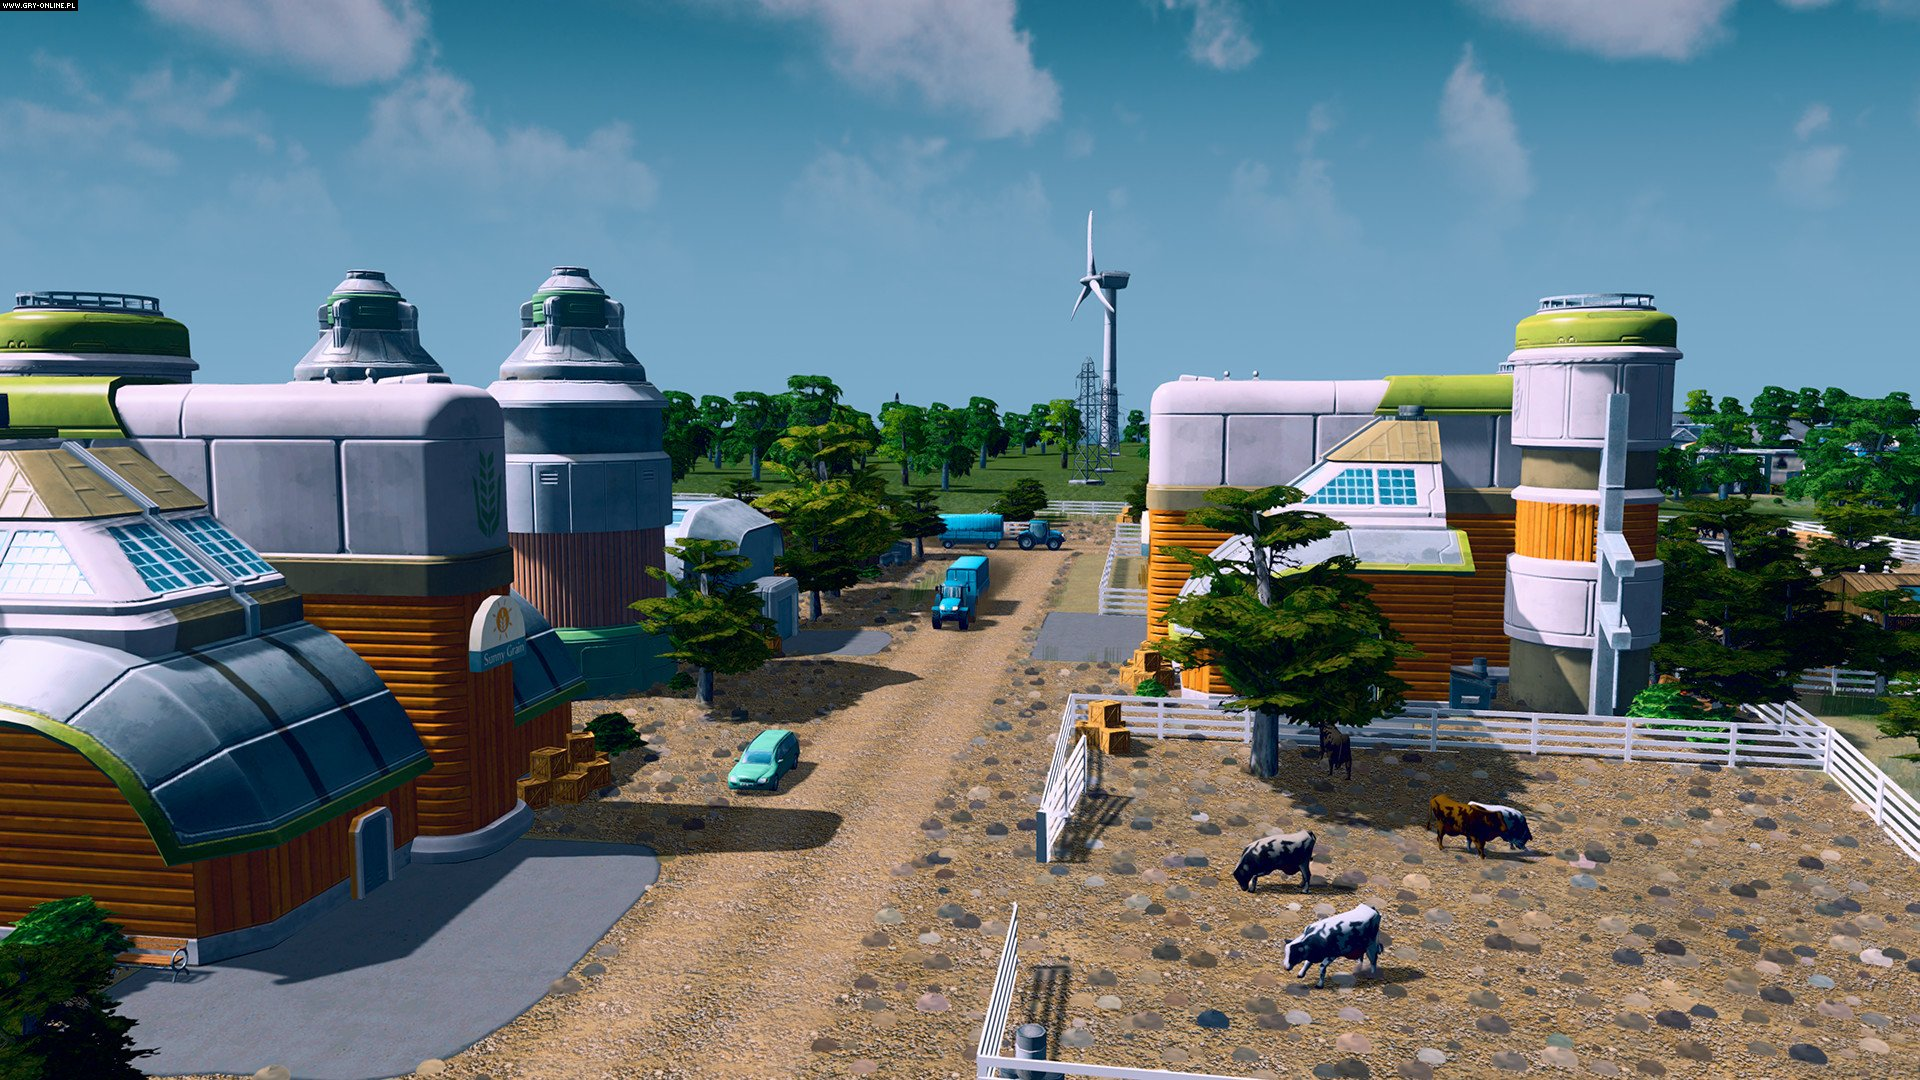 Cities: Skylines PC, PS4, XONE Gry Screen 22/42, Colossal Order, Paradox Interactive